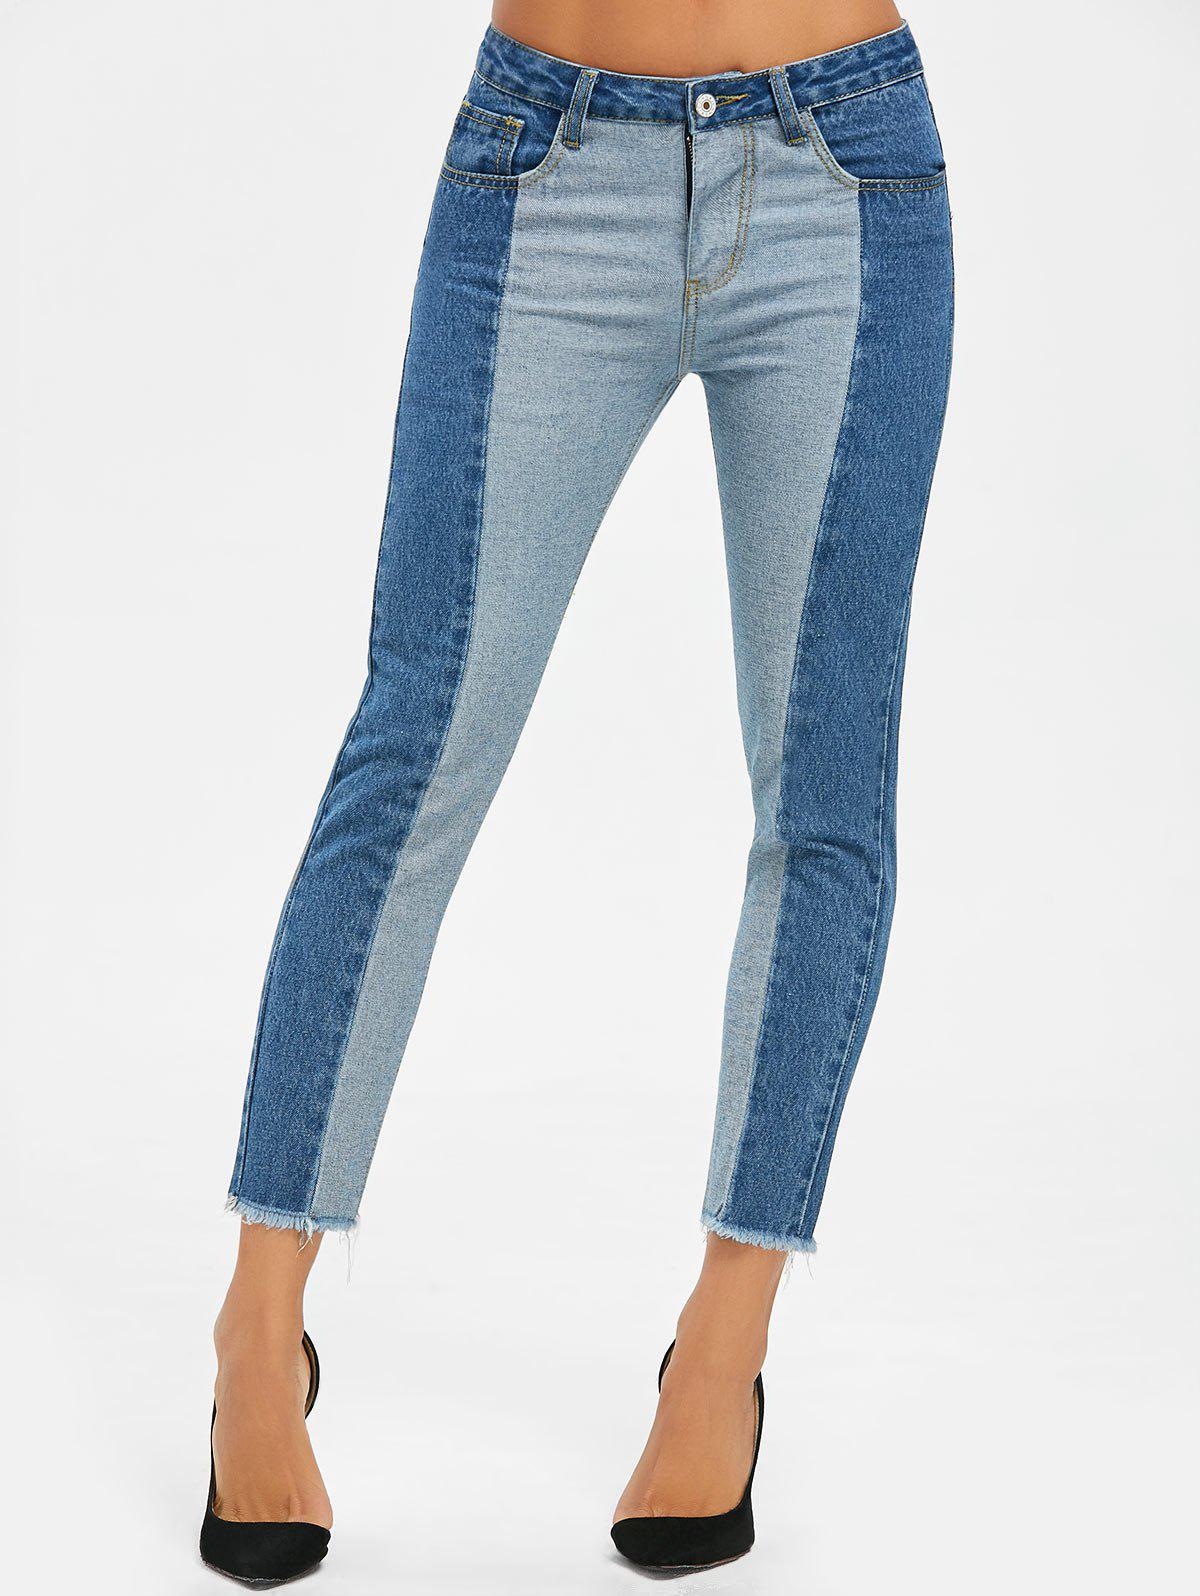 Jeans Crop Edge Raw à deux tons - Denim Bleu XL